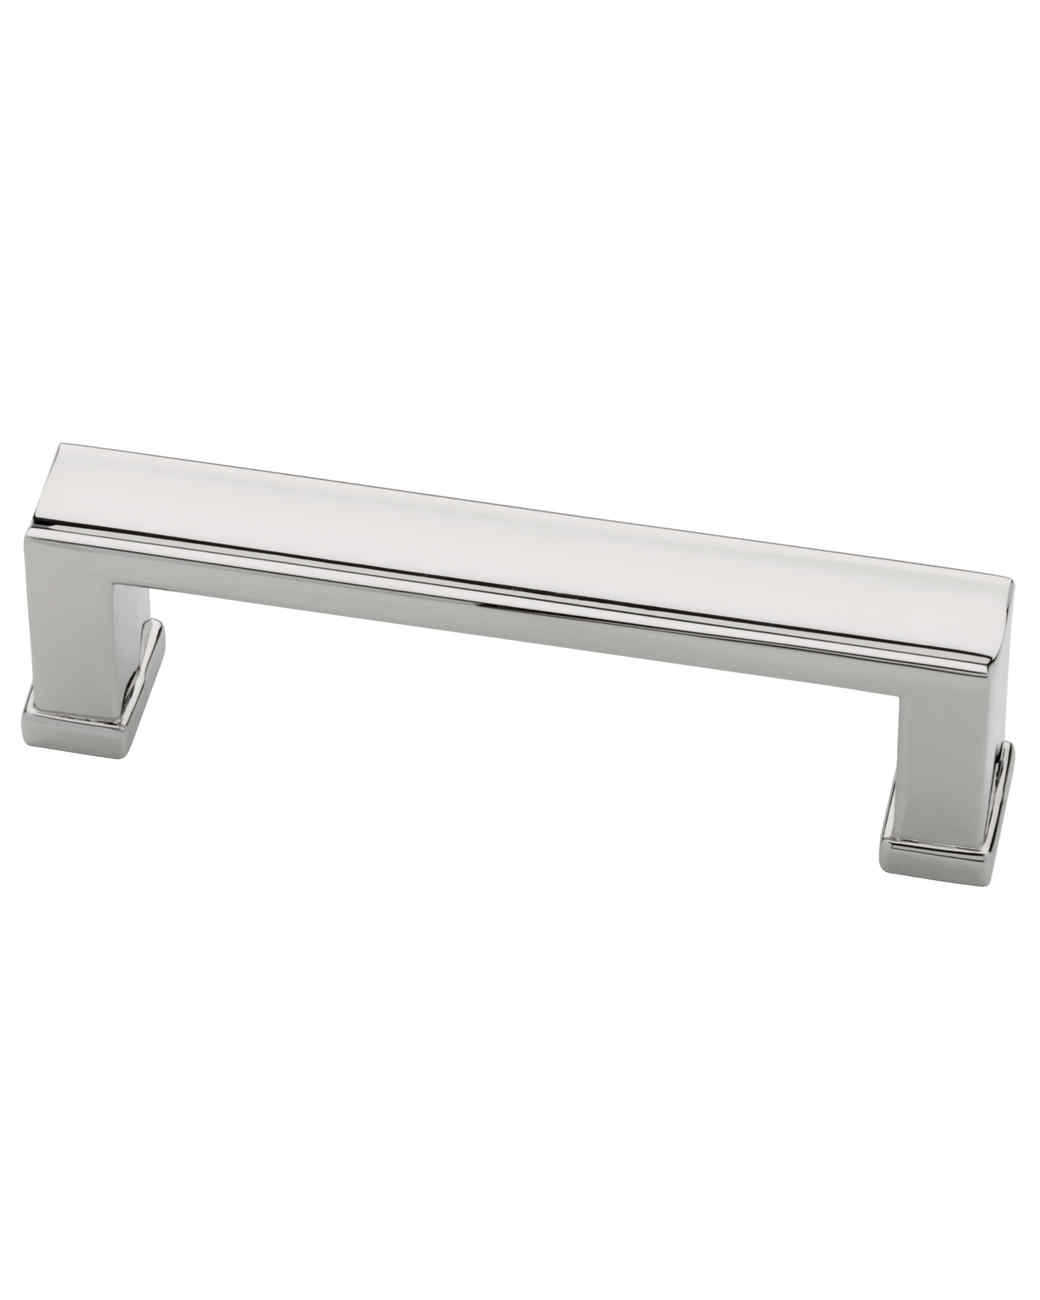 kitchens-polished-nickel-handles-ms108156.jpg